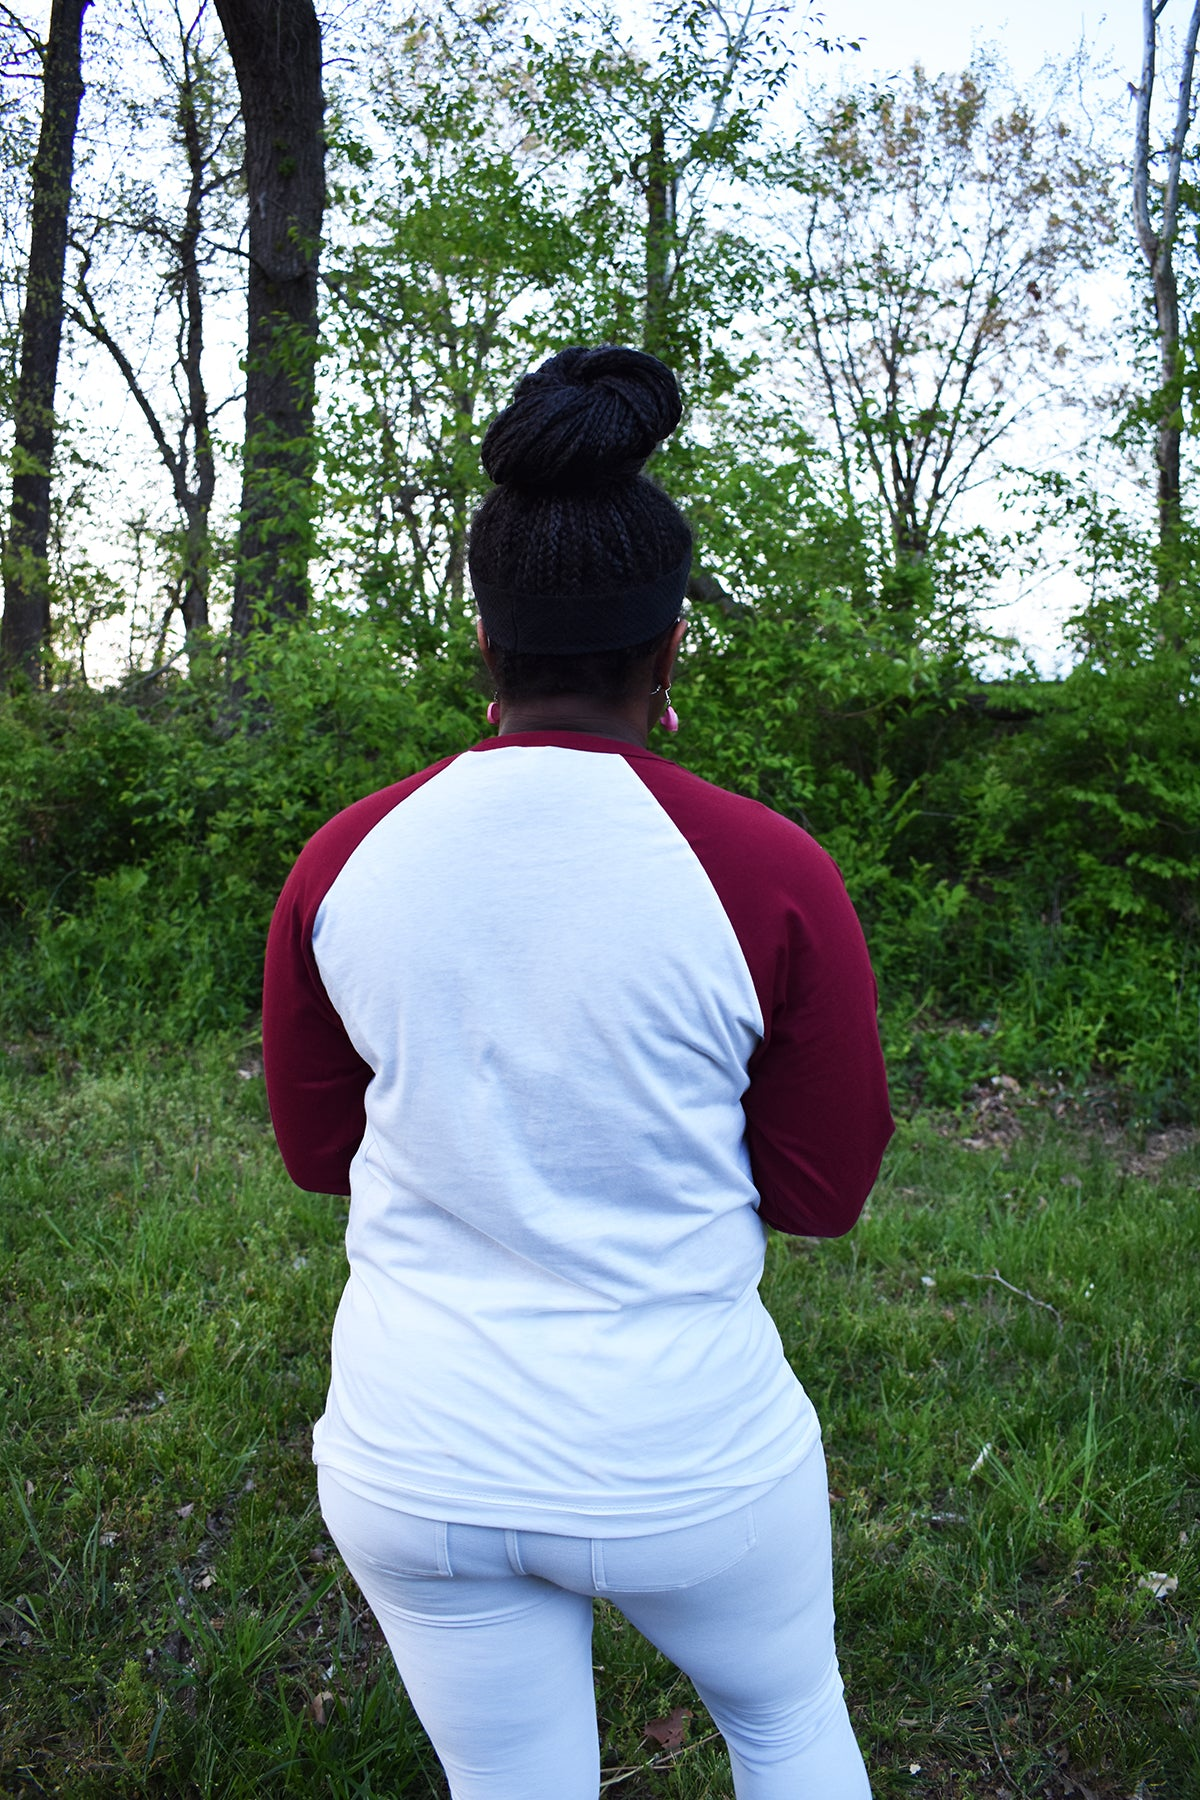 Female model wearing a baseball tee with a white body and red sleeves.